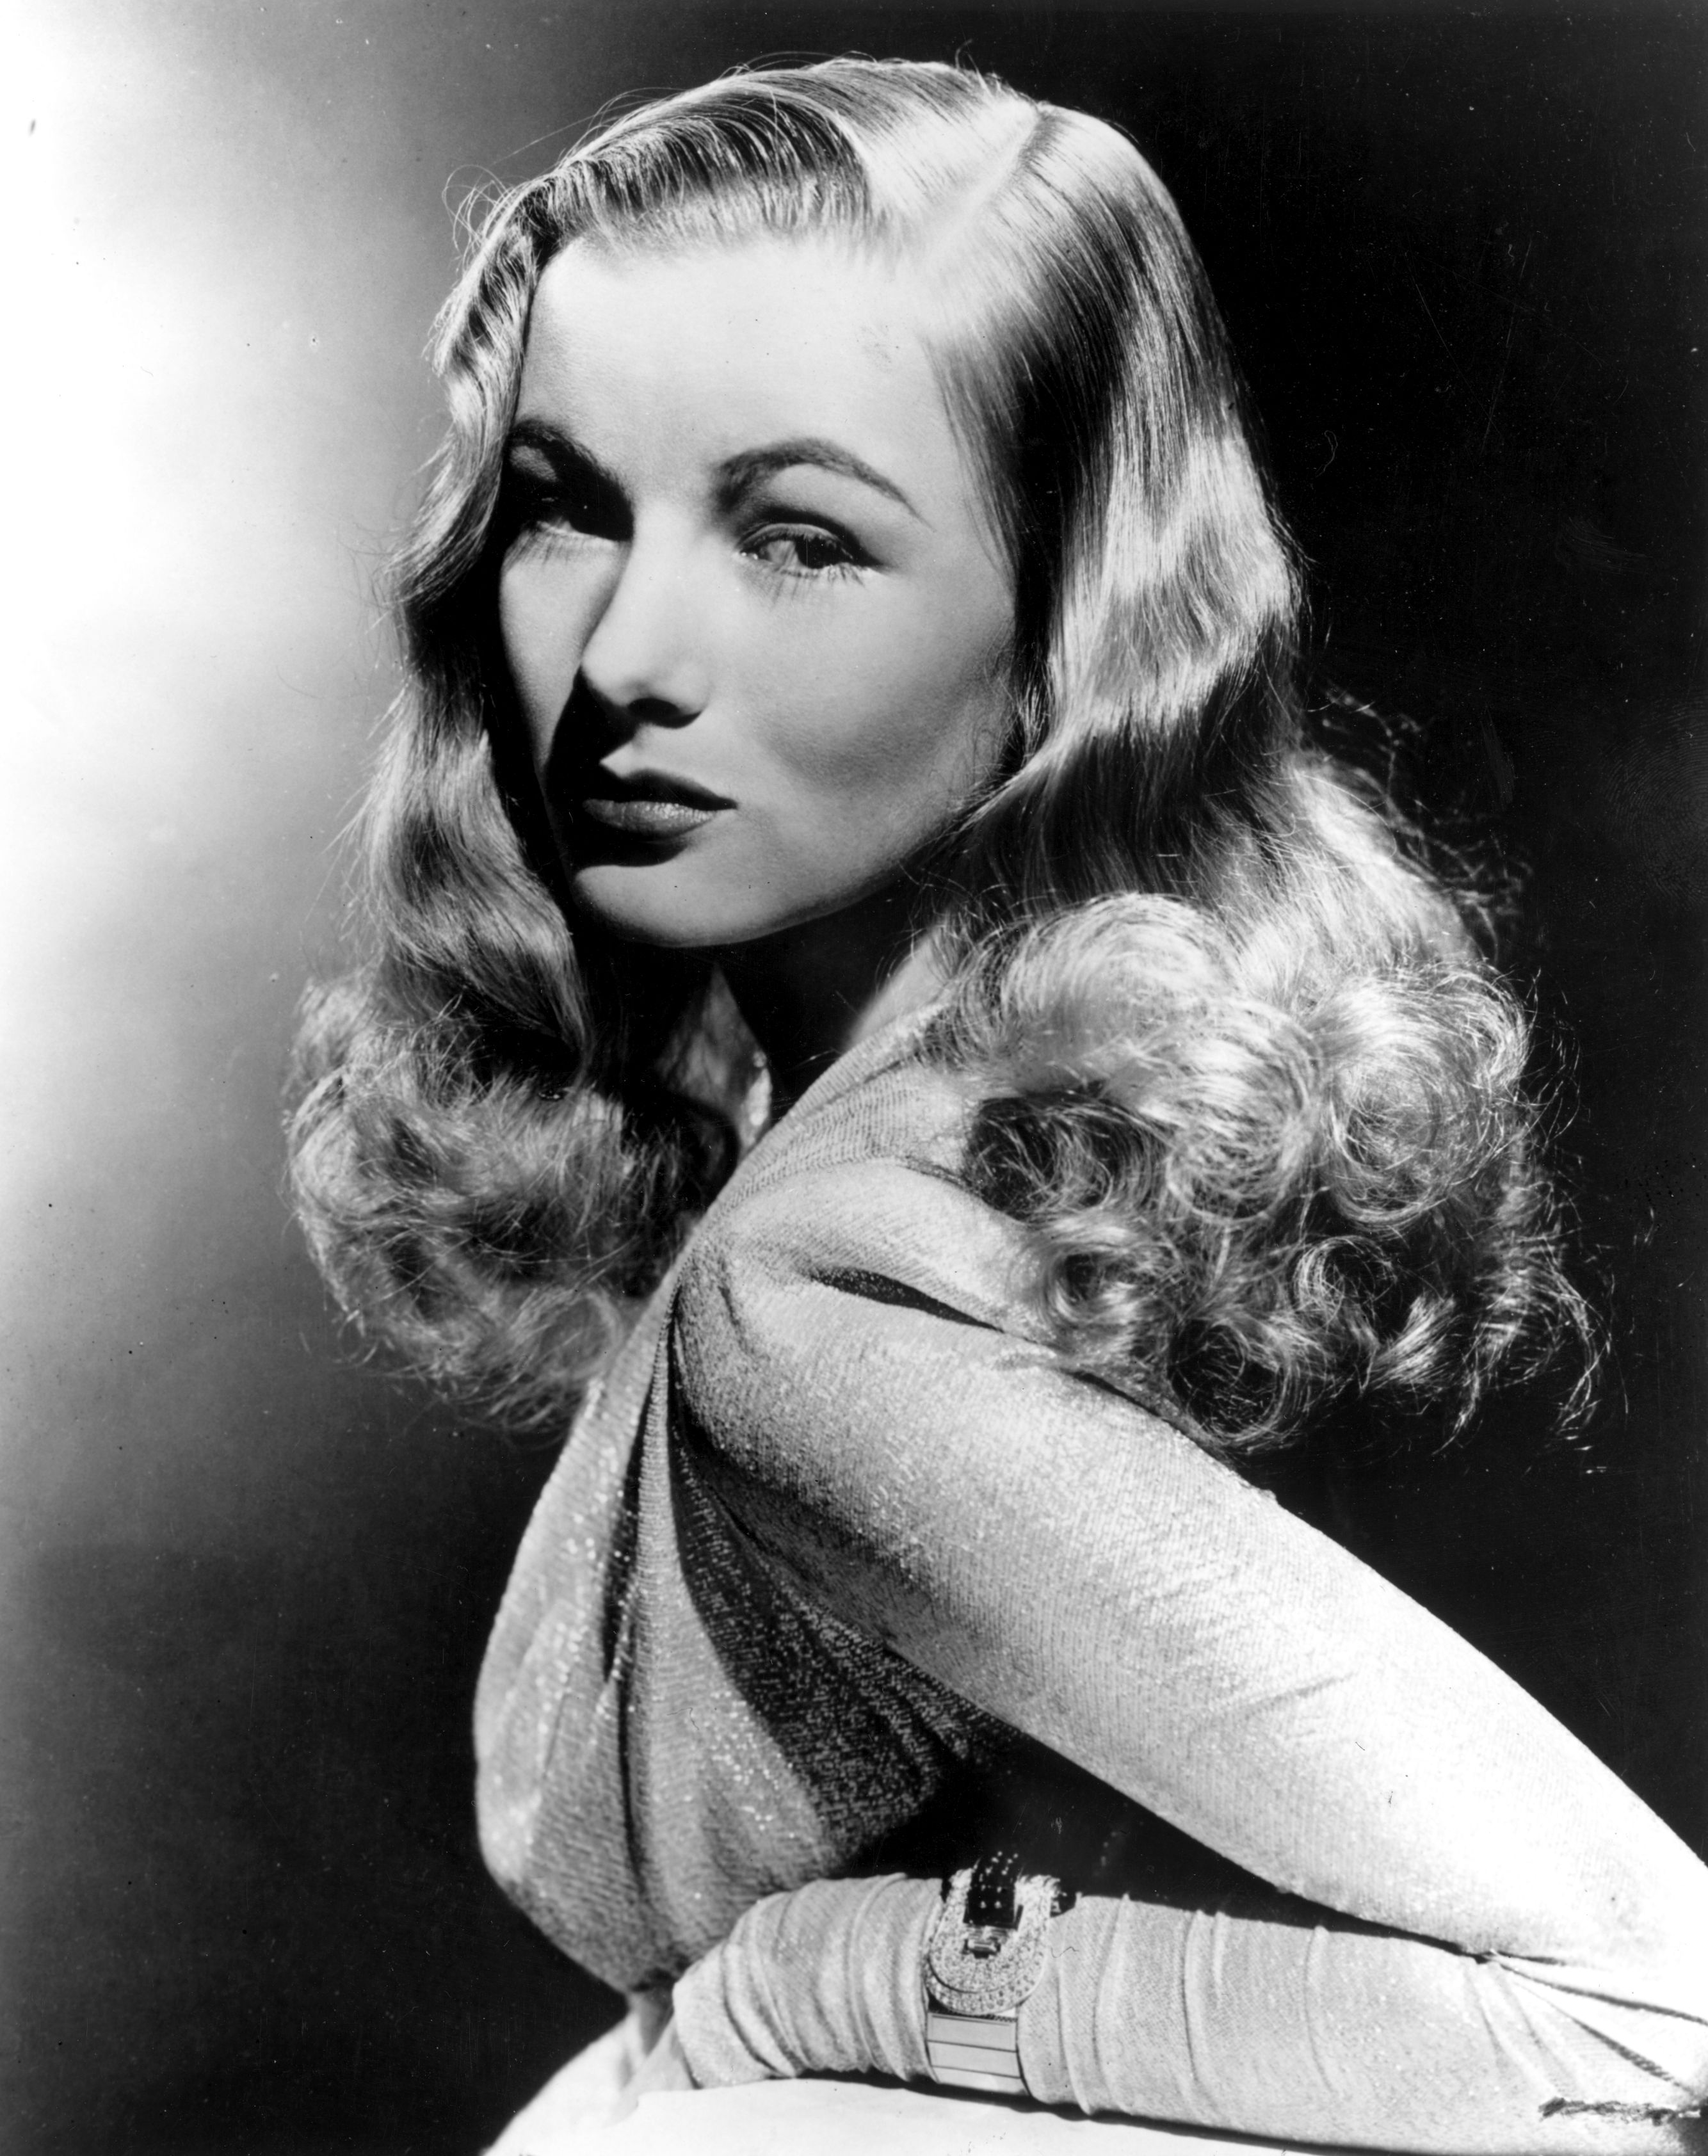 A portrait of the Glamorous actress Veronica Lake on January 01, 1945 | Photo: Getty Images